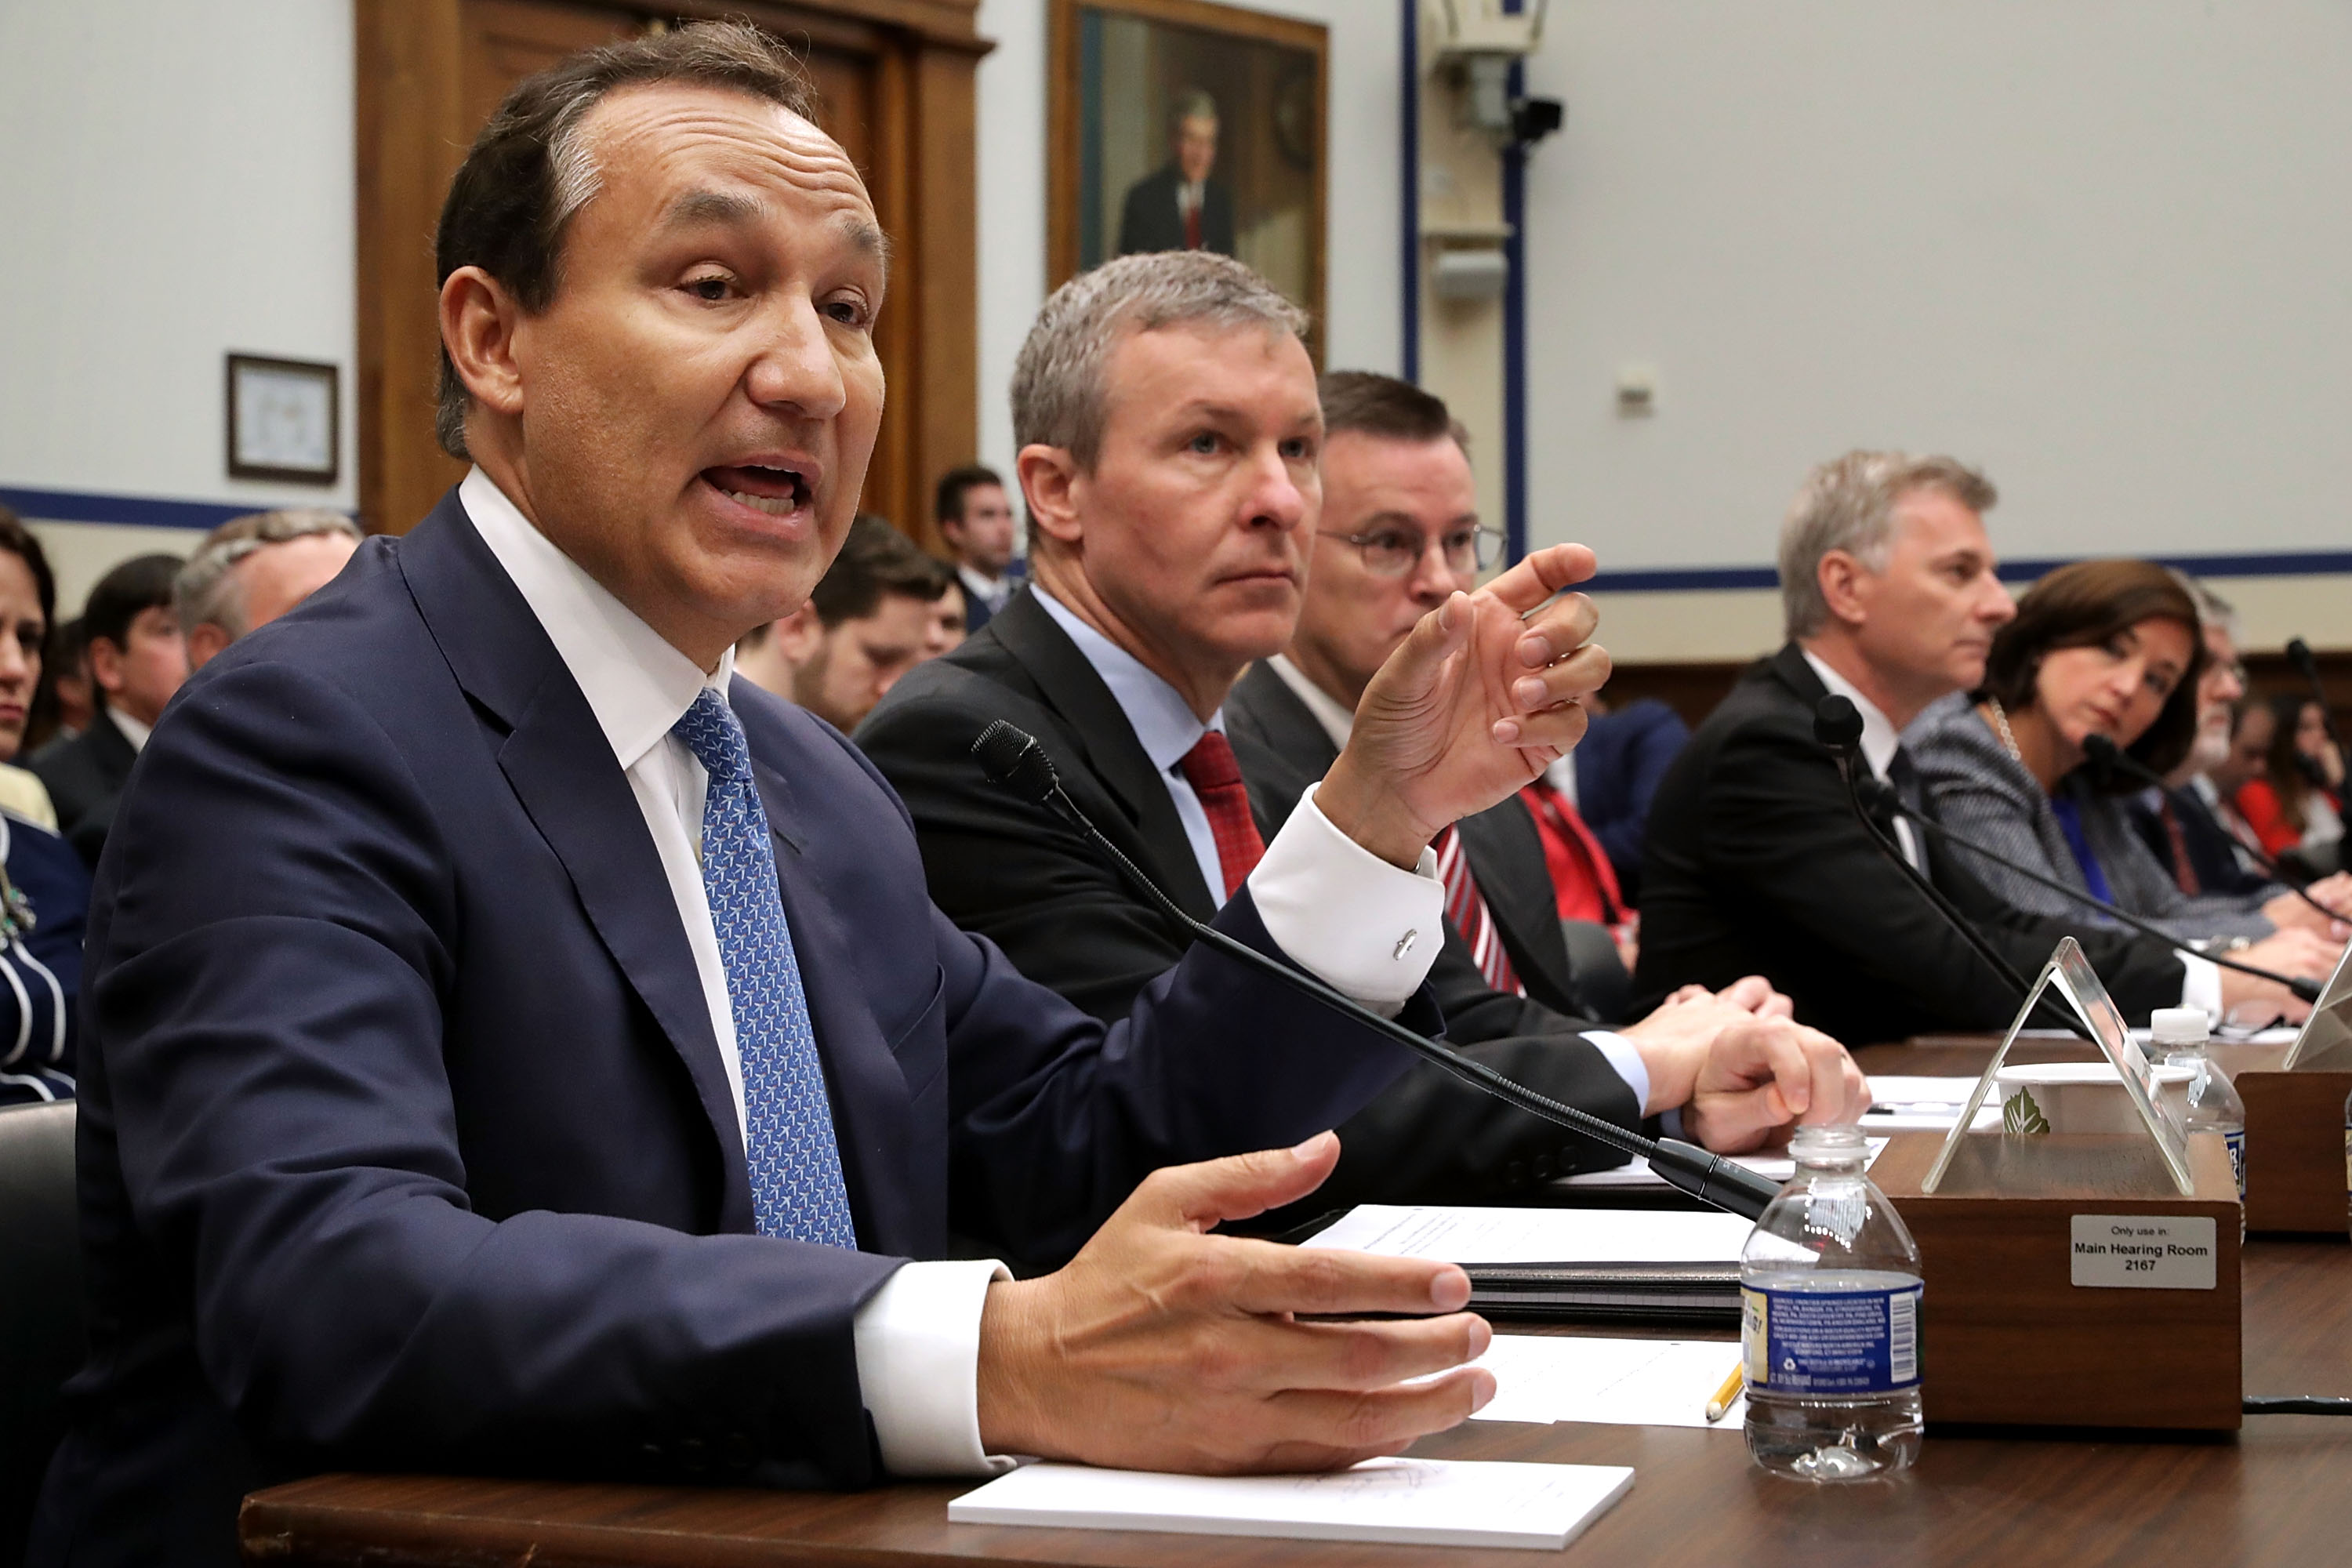 United Airlines CEO Oscar Munoz (left) testifies before the House Transportation and Infrastructure Committee about oversight of U.S. airline customer service.